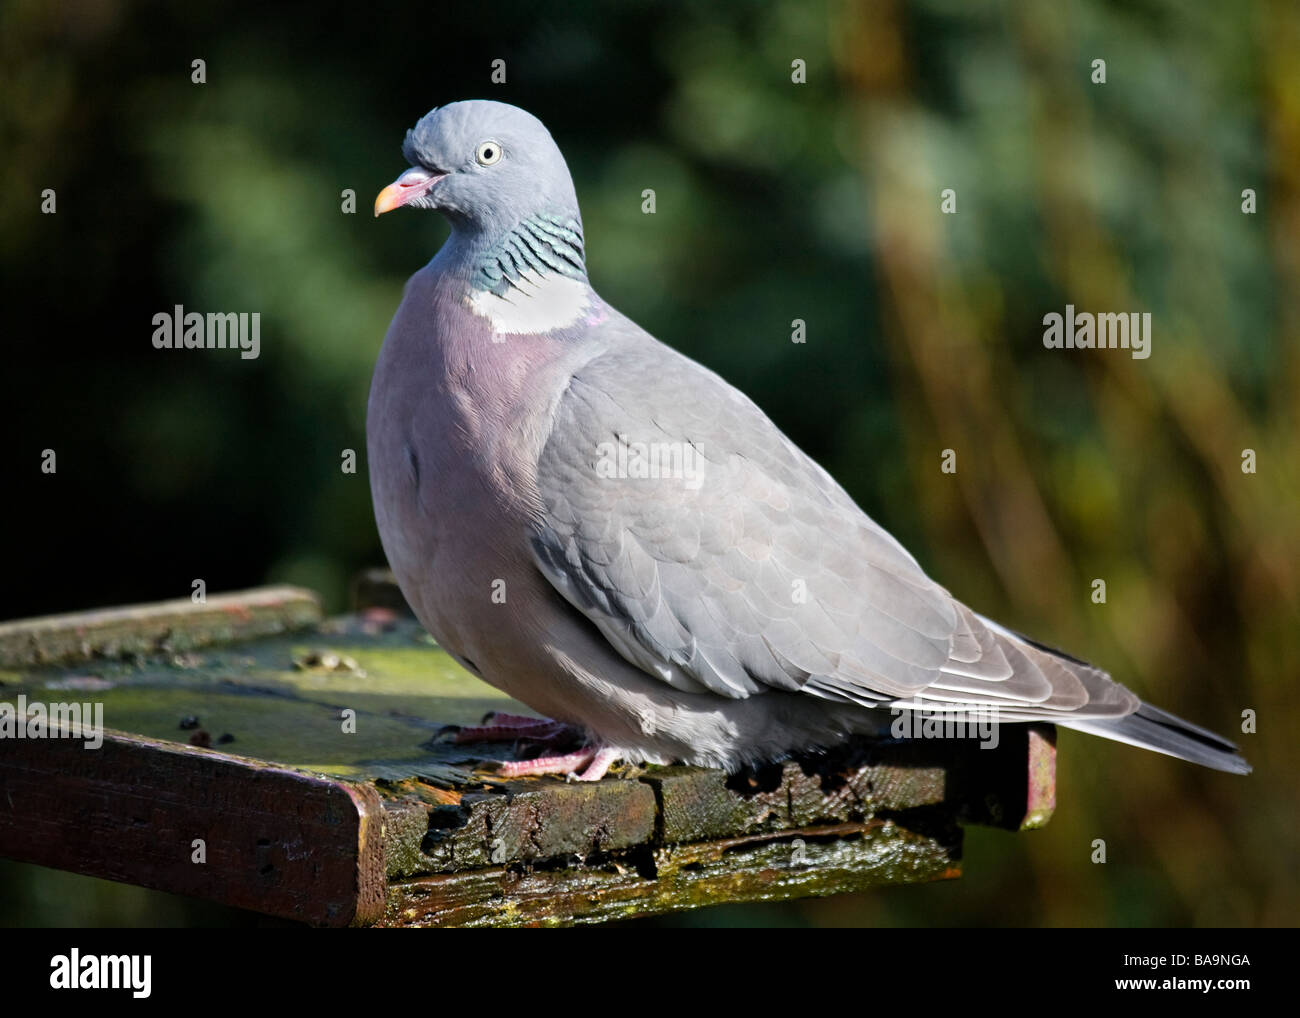 Wood Pigeon, Columba palumbus, perched on an old feeding table. - Stock Image